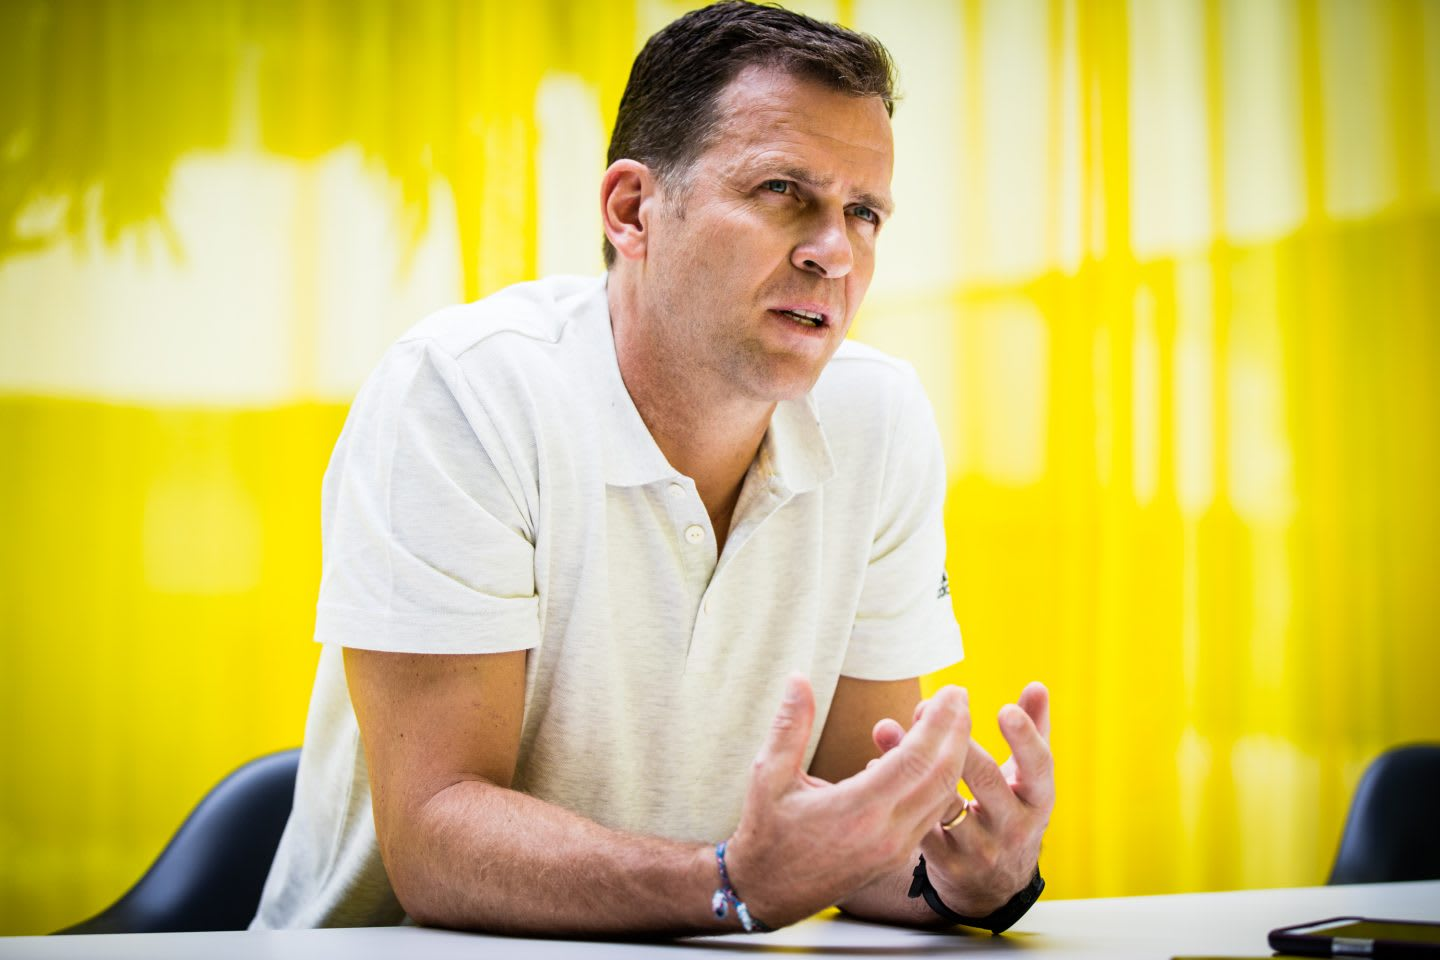 Oliver Bierhoff wearing white poloshirt giving an interview in front of a yellow background, Oliver Bierhoff_DFB_Manager_Interview_adidas_GamePlan A, German national football team